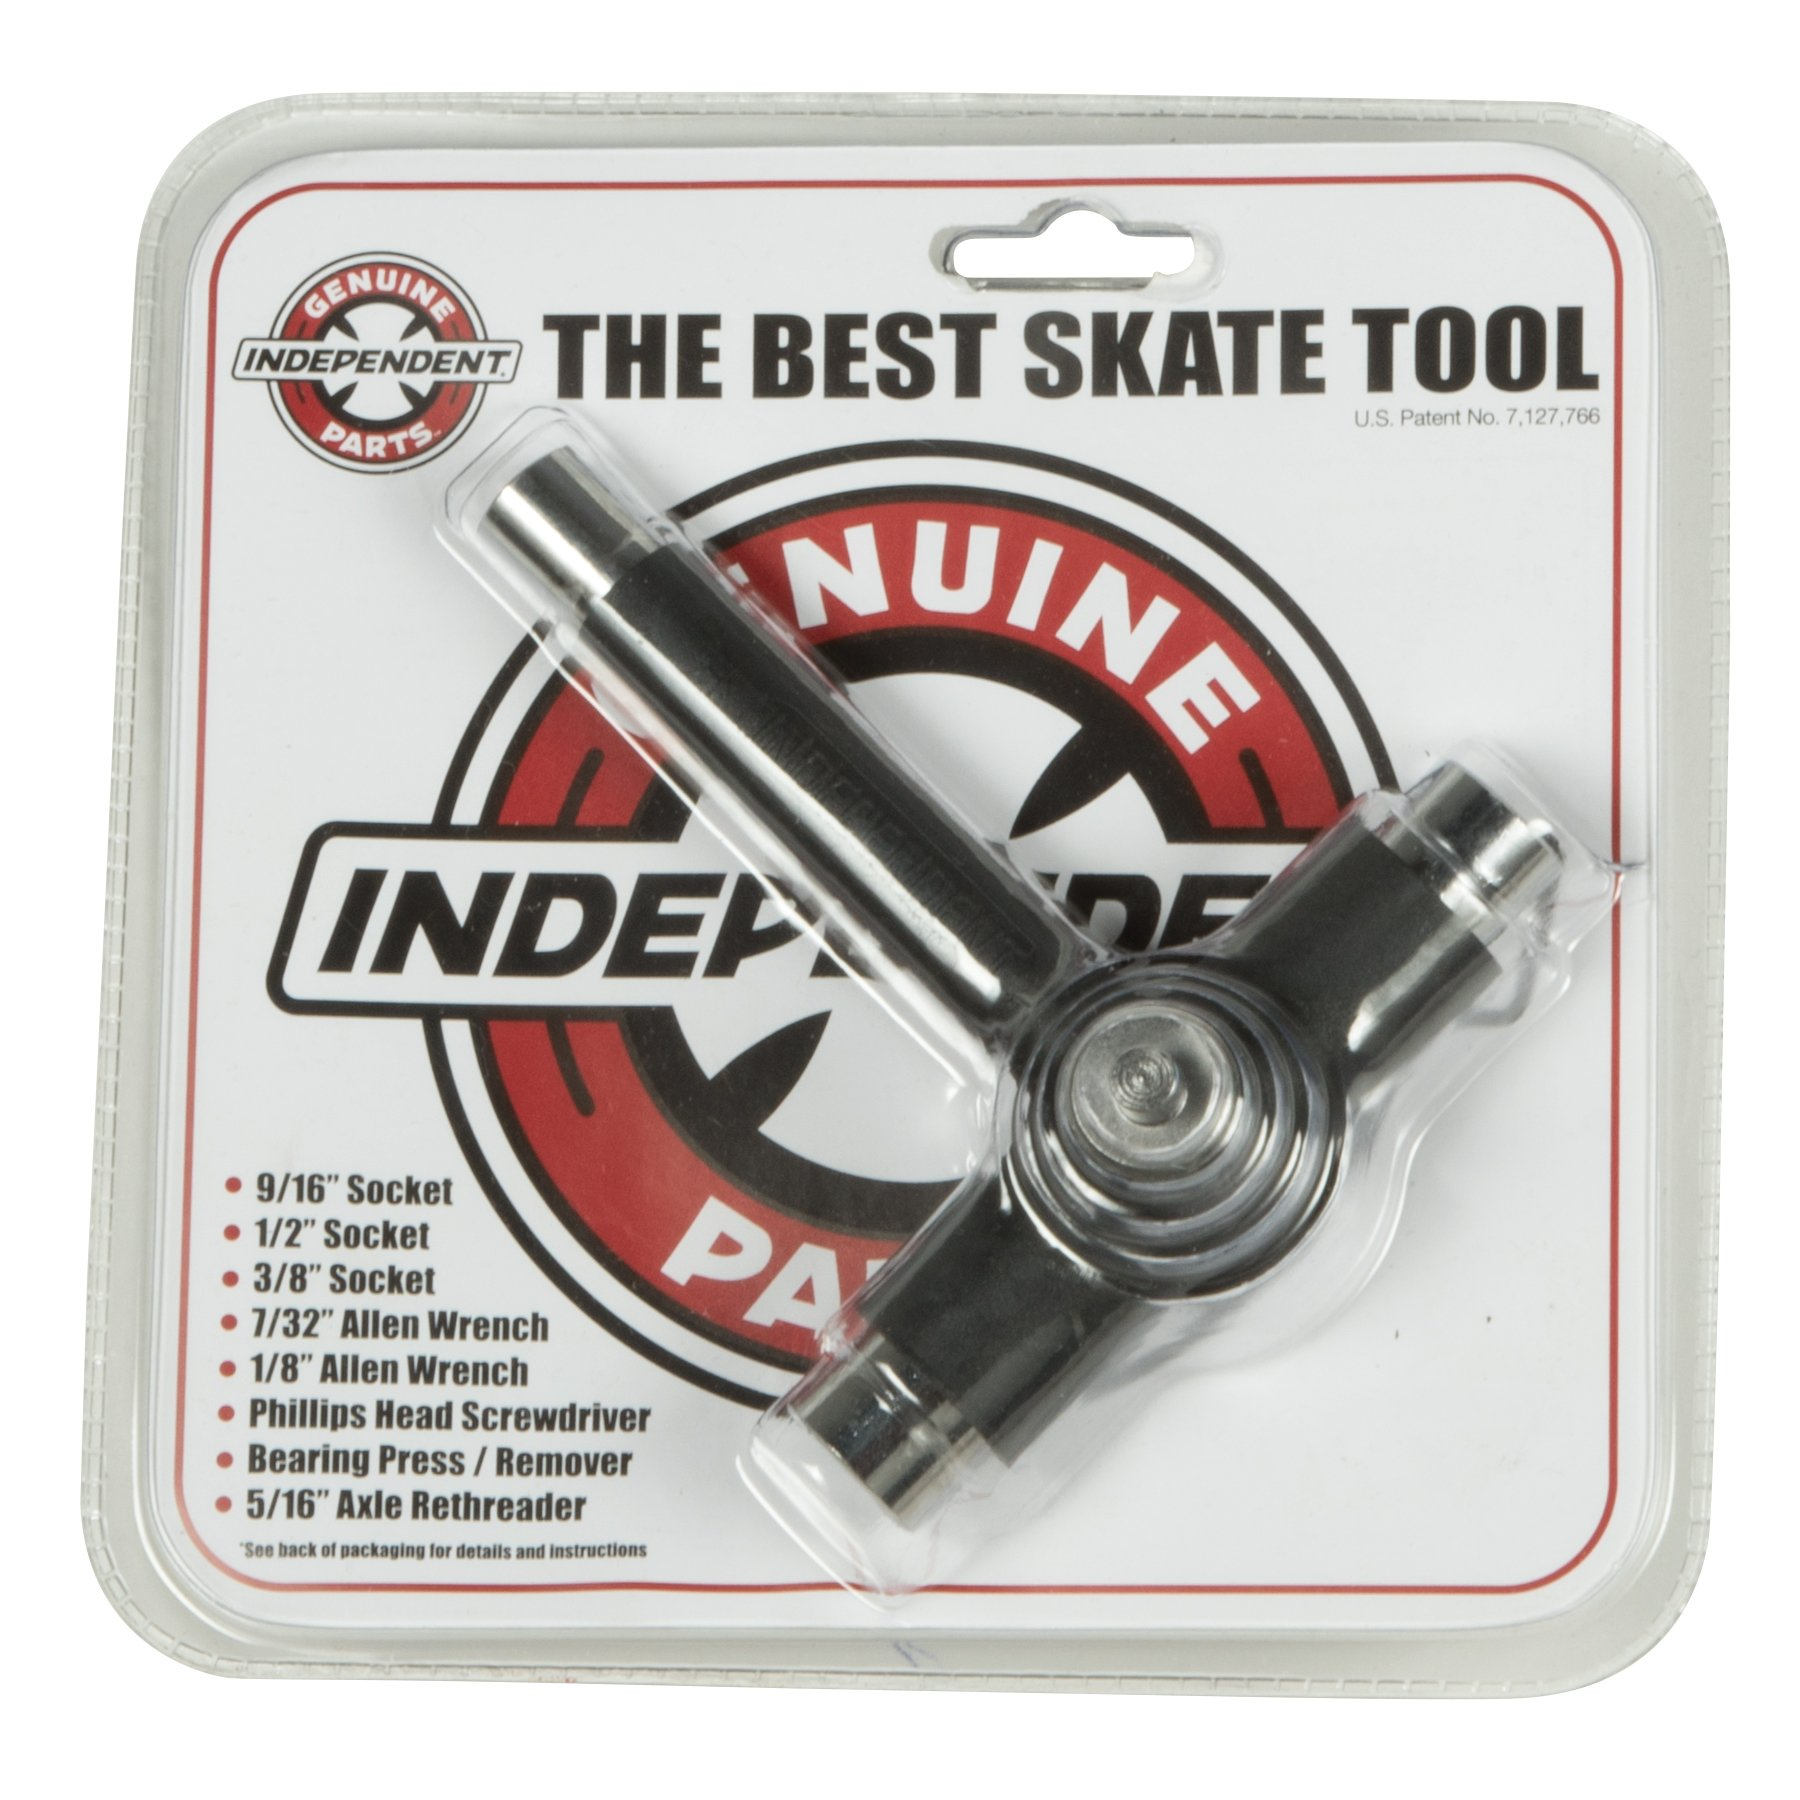 Independent Skate Skateboard Tool One Size Black by Independent